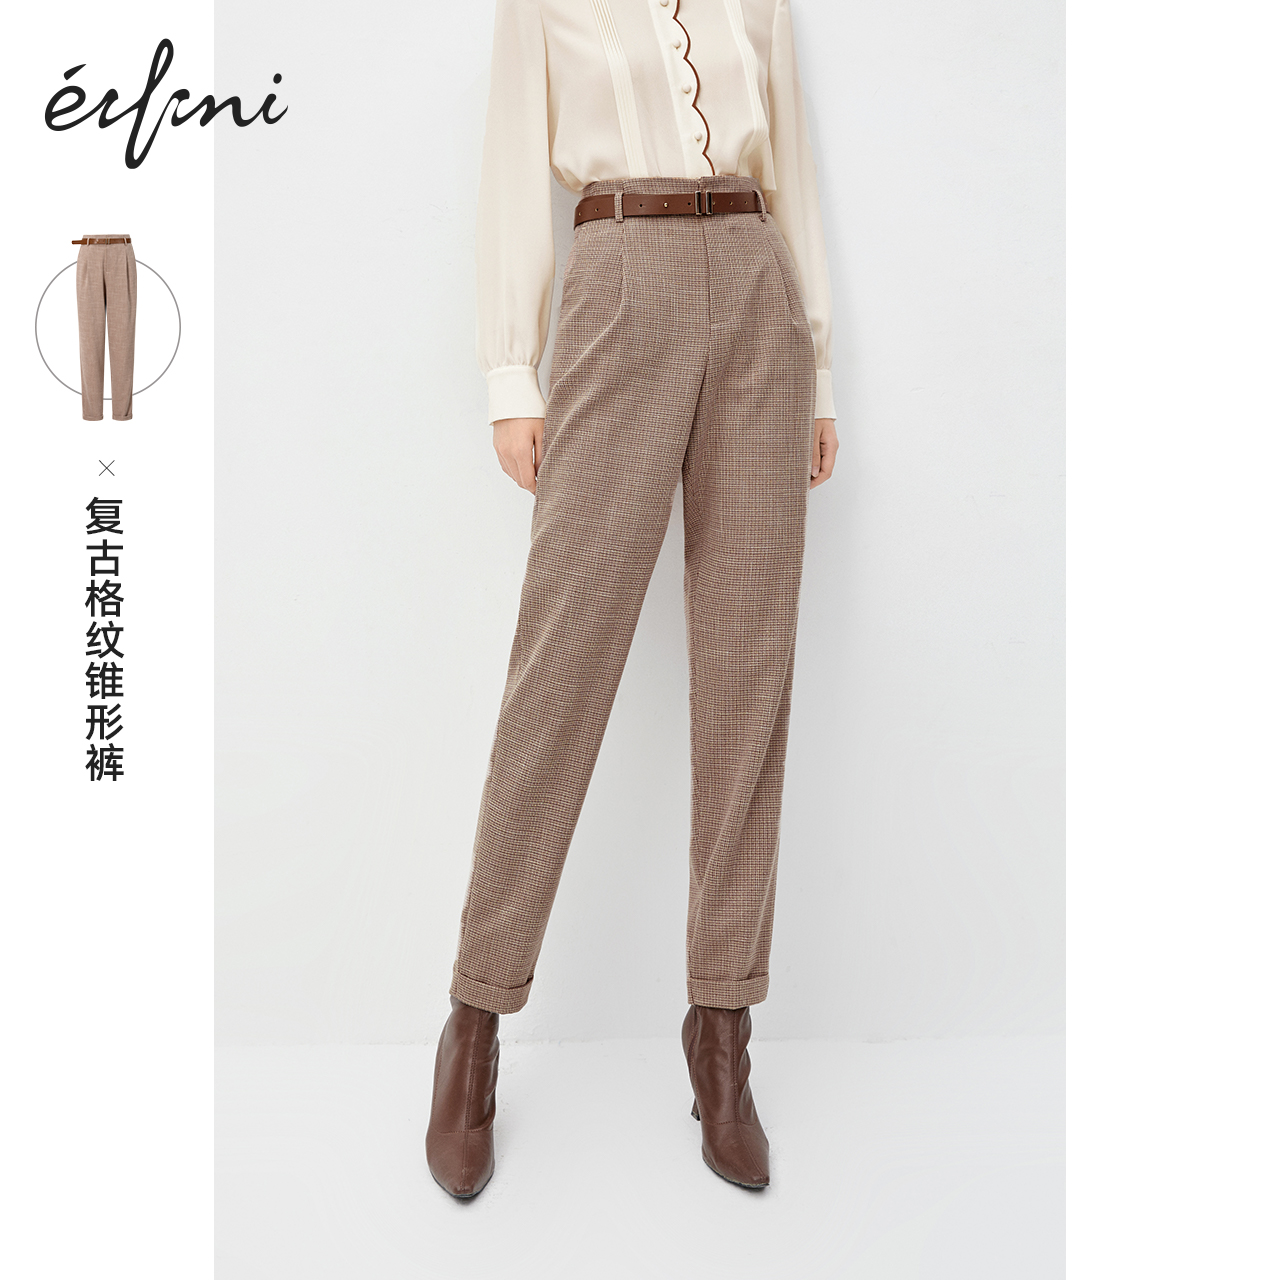 Eveli casual pants women 2020 autumn new retro check high waist tapered feet pants commuter ladies trousers